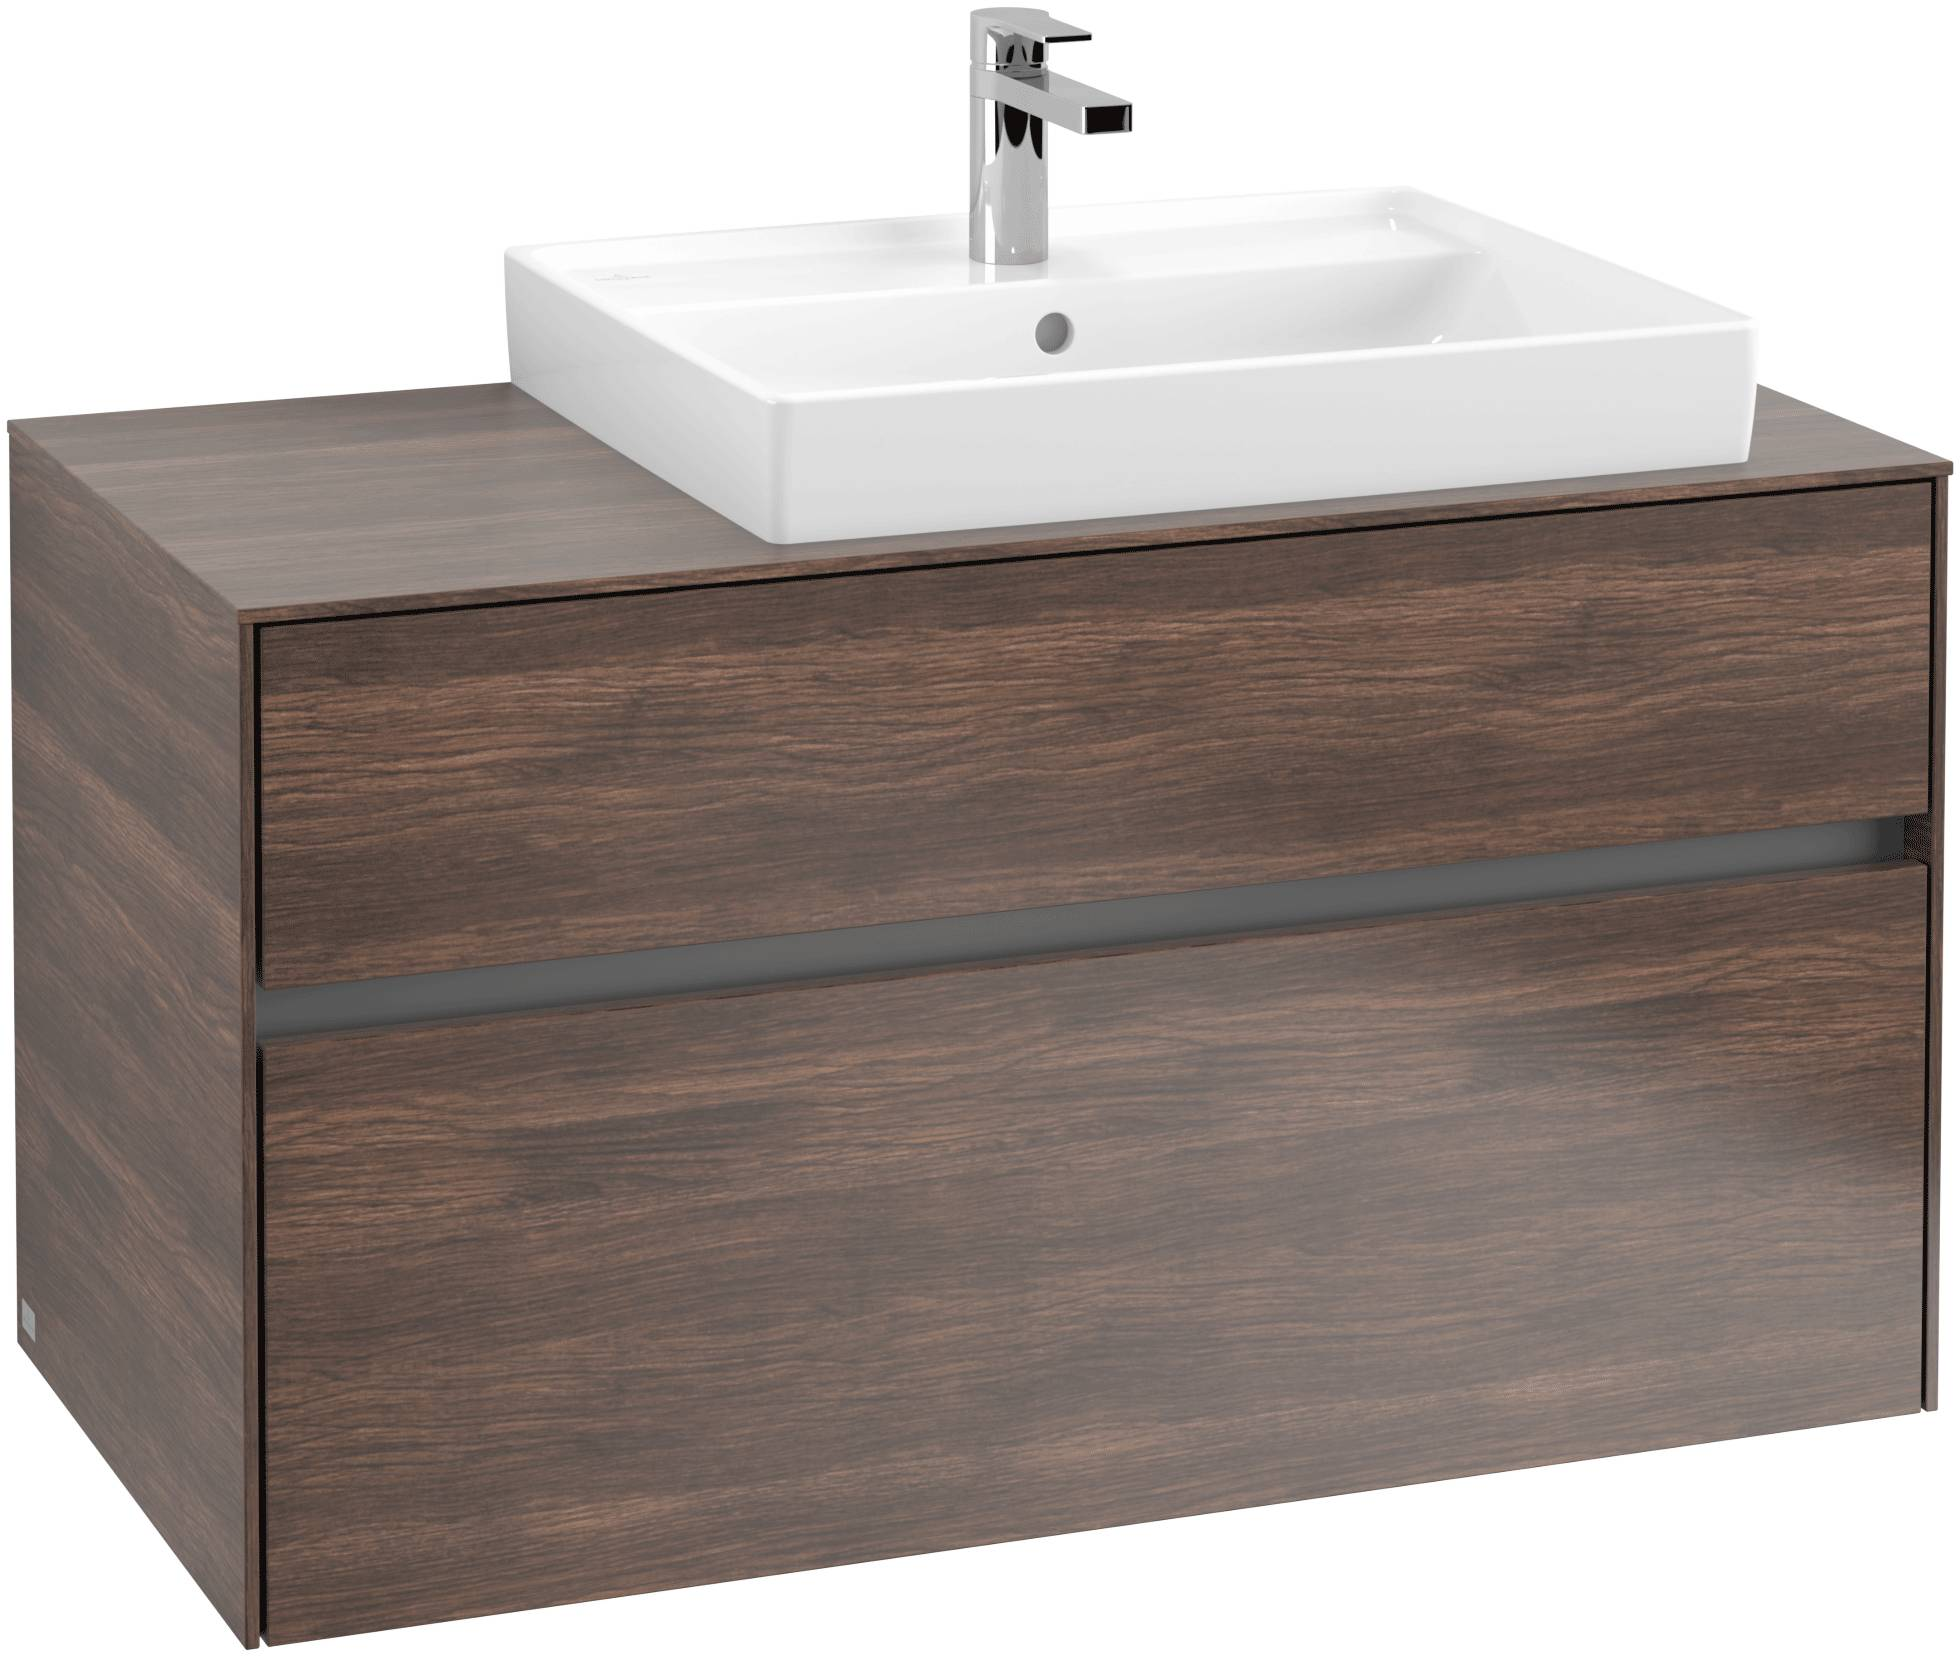 Villeroy & Boch Villeroy & Boch Collaro - Meuble sous lavabo with 2 drawers & 1 cut-out right 1000 x 548 x 500mm arizona oak